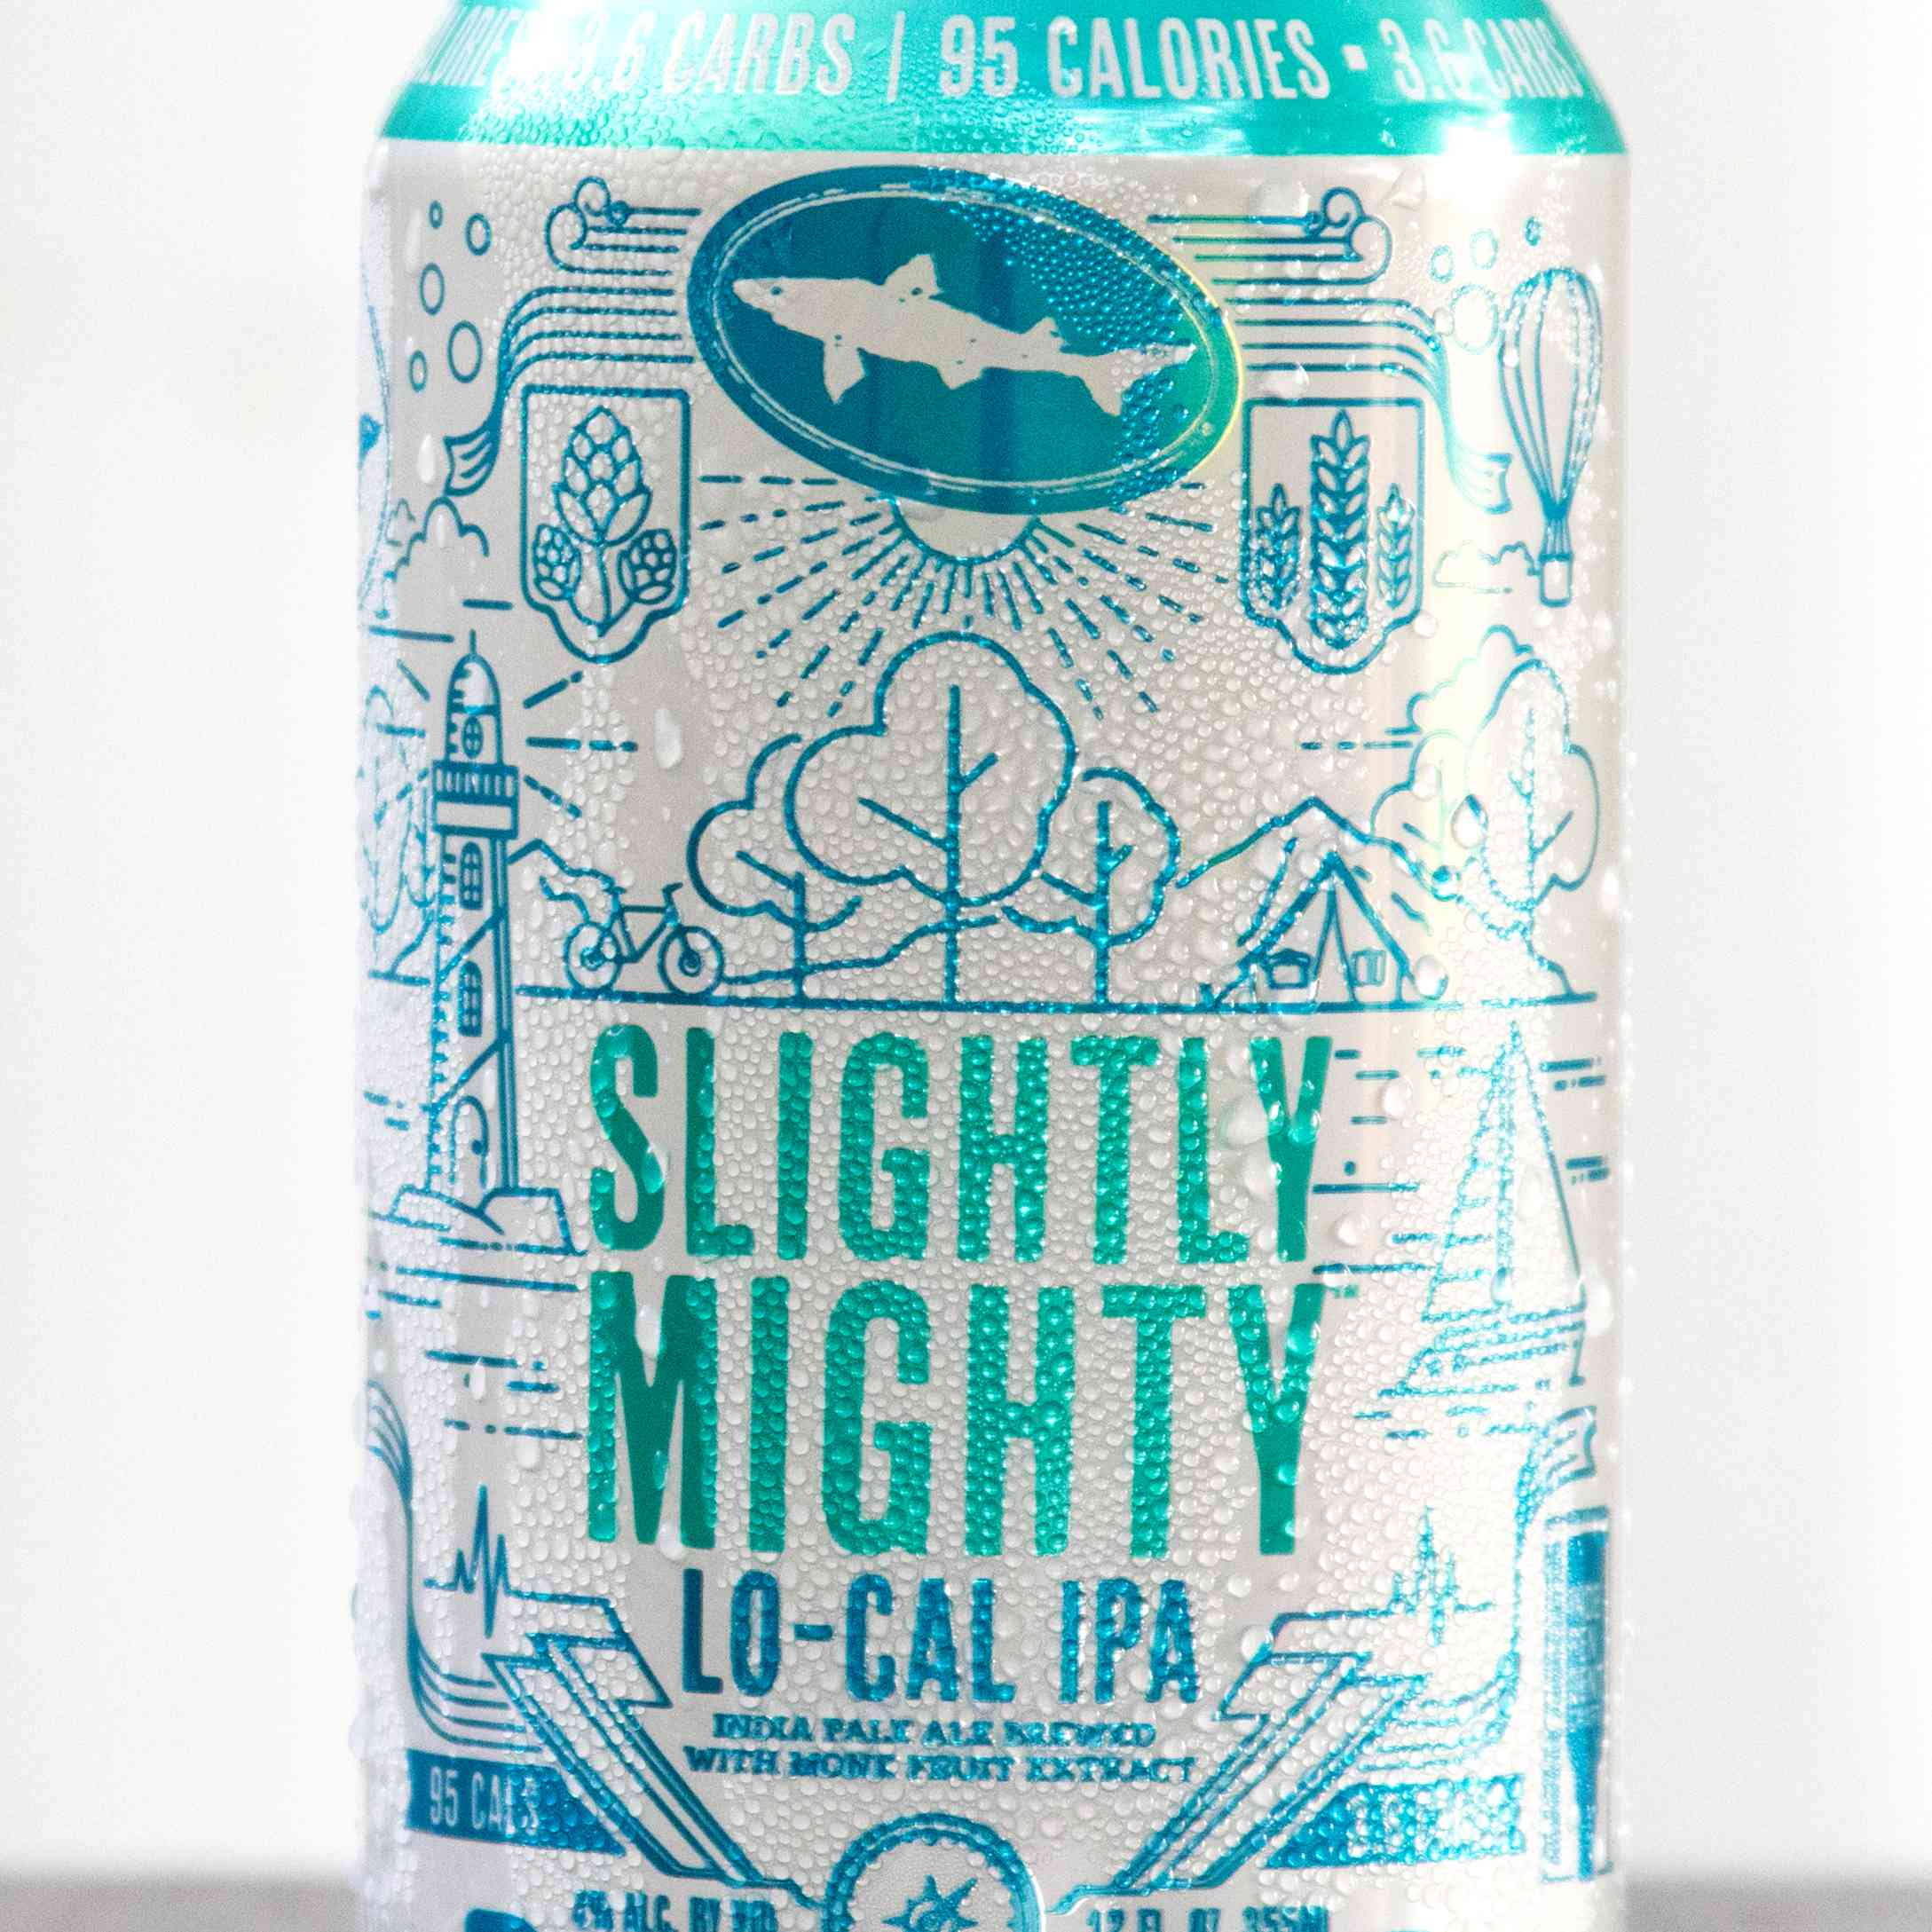 Dogfish Head Brewing's Slighty Mighty Beer